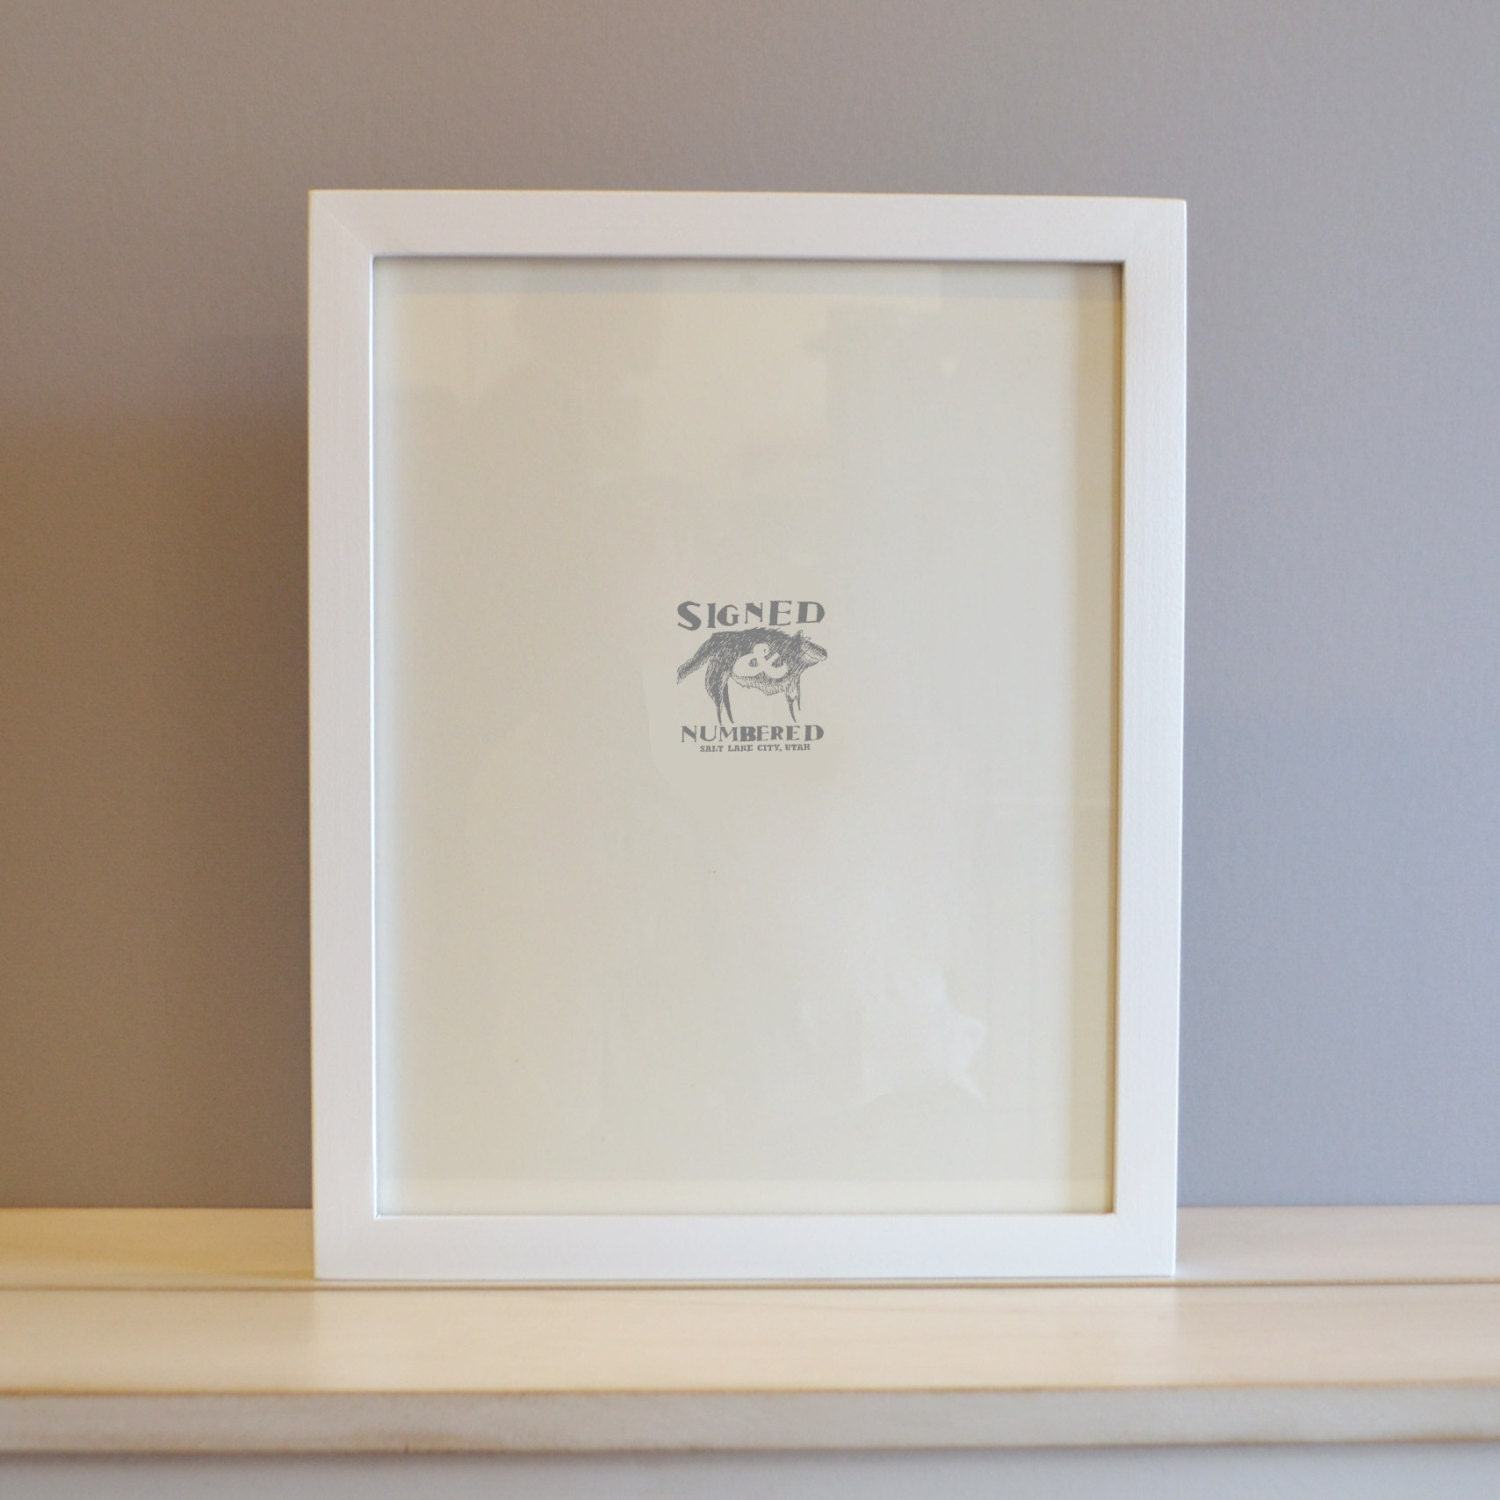 11x14 Picture Frame in 1x1 Flat Style with Solid White Finish - Can ...